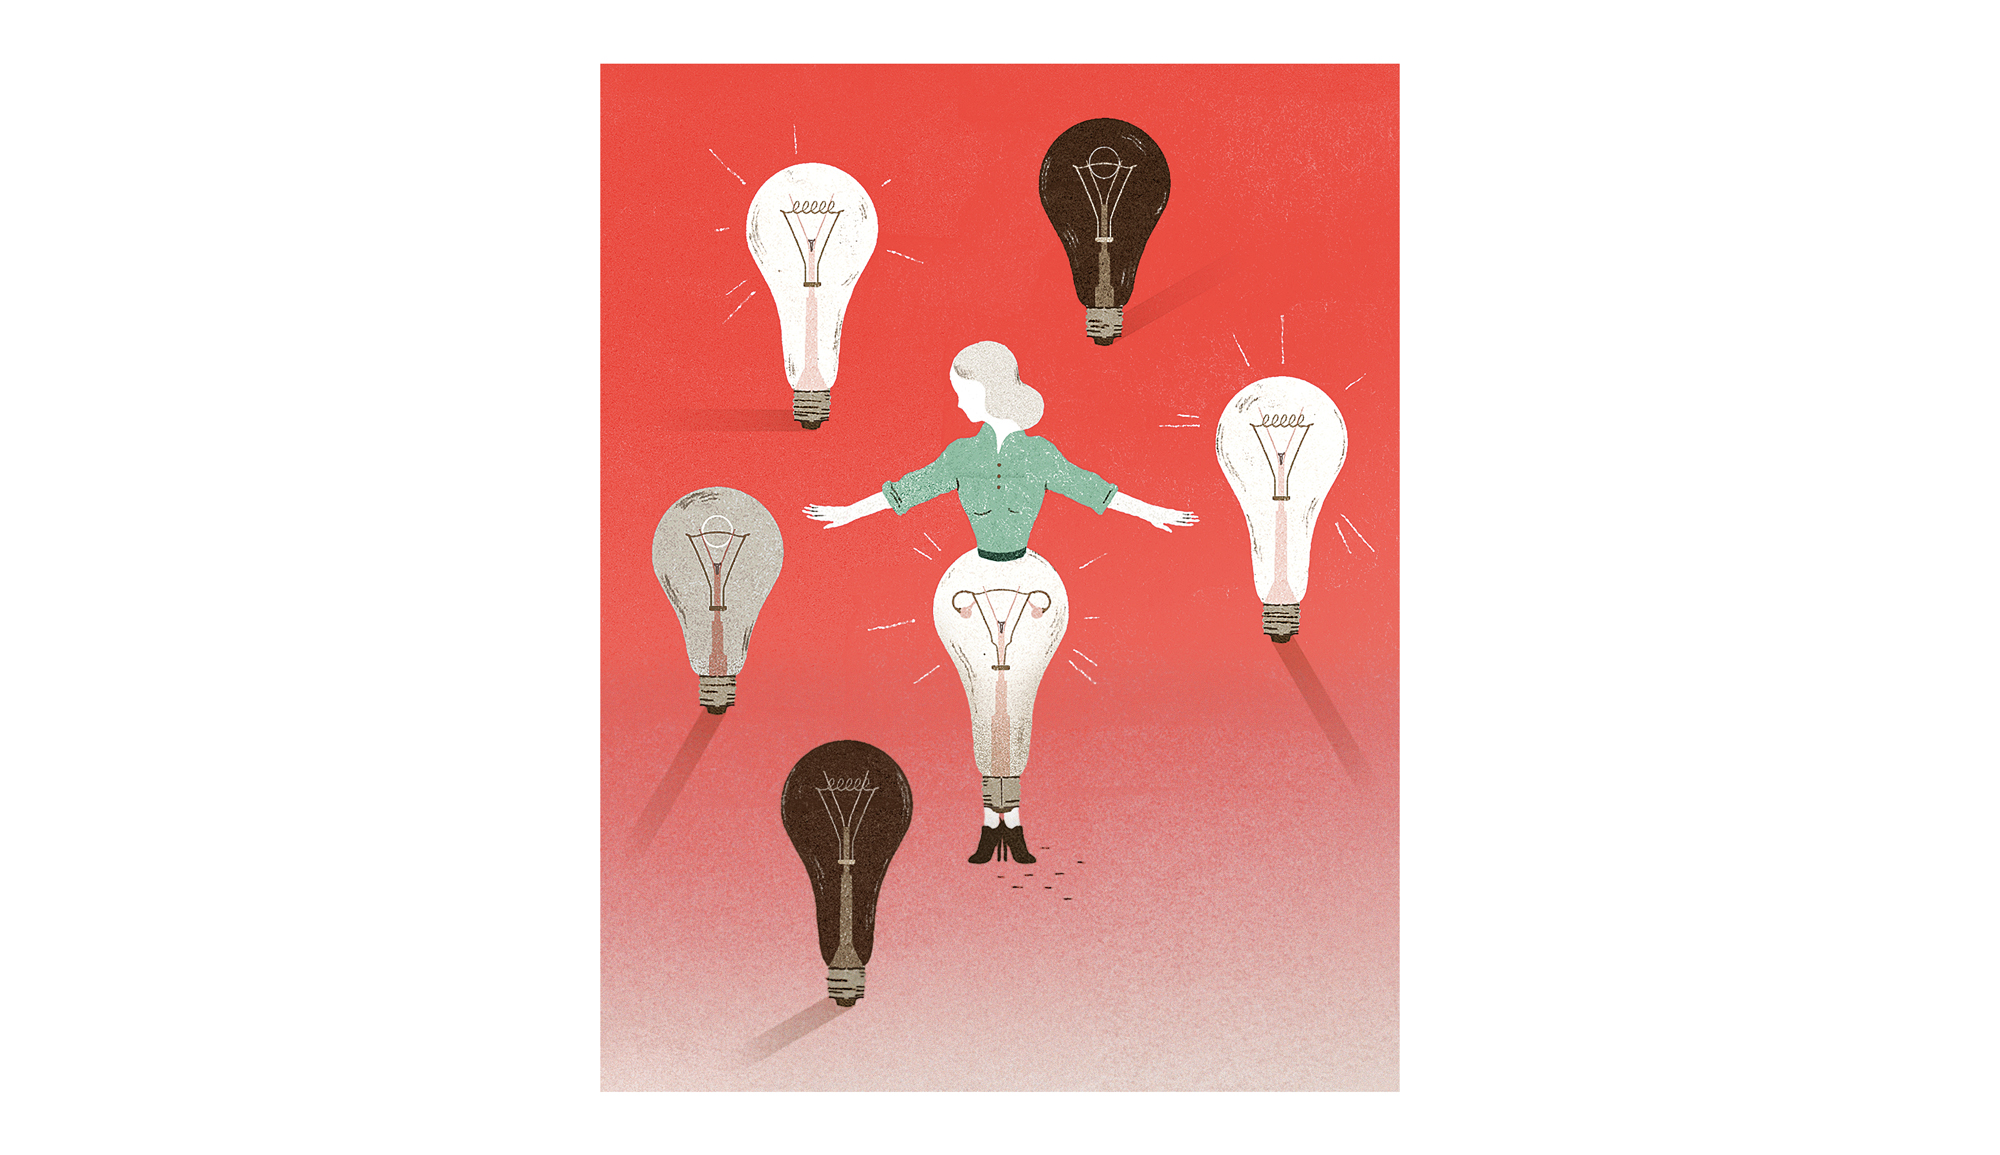 Illustration of a woman and light bulbs